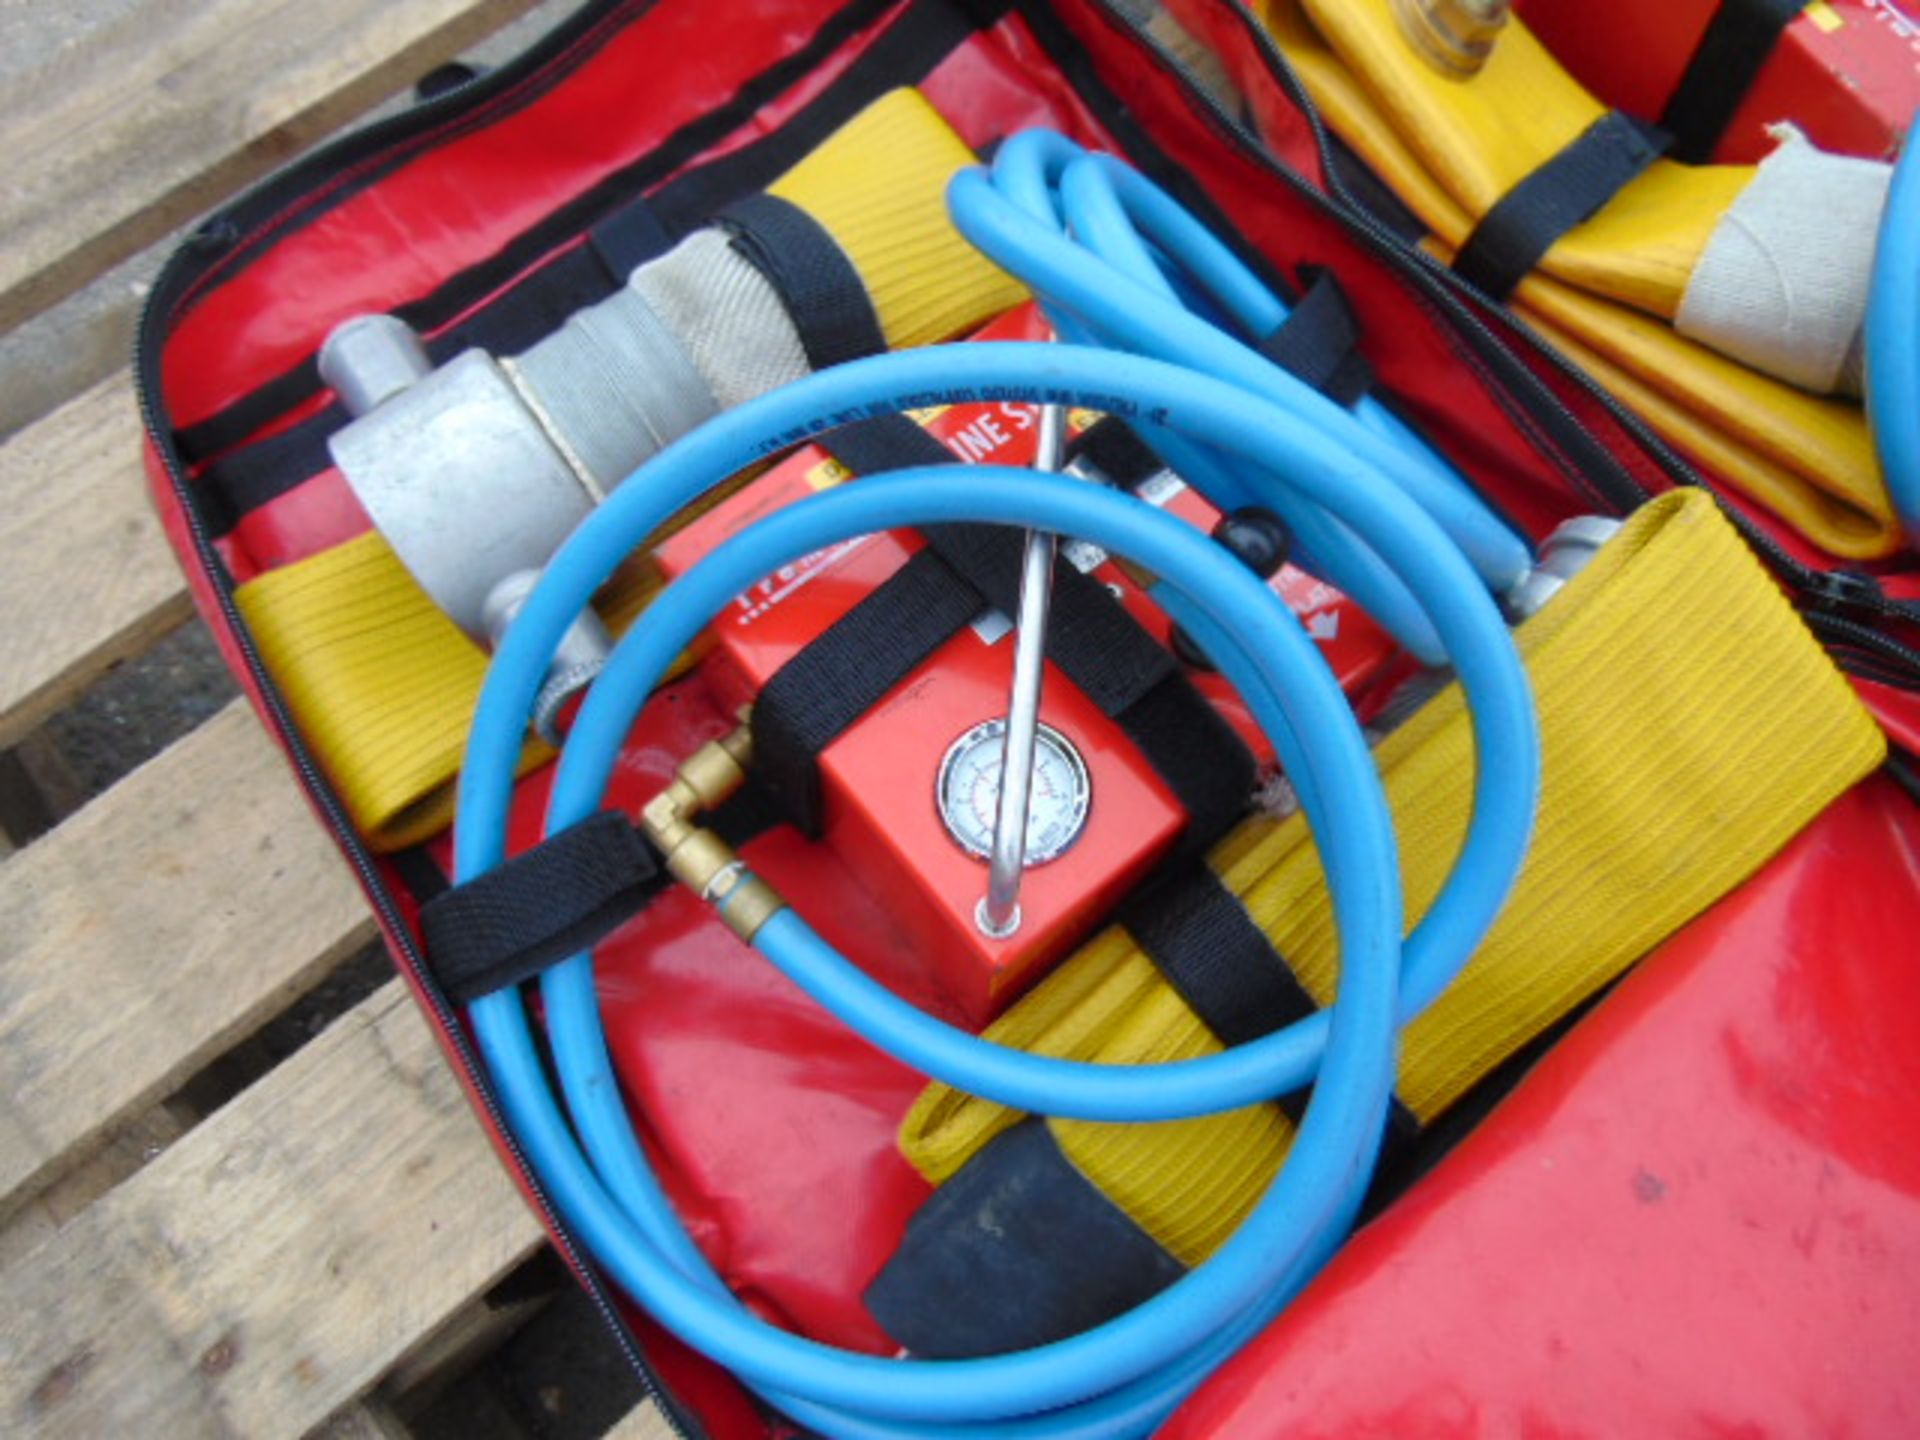 QTY 2 x Premier Lifeline Hose Inflation Systems - Image 3 of 4